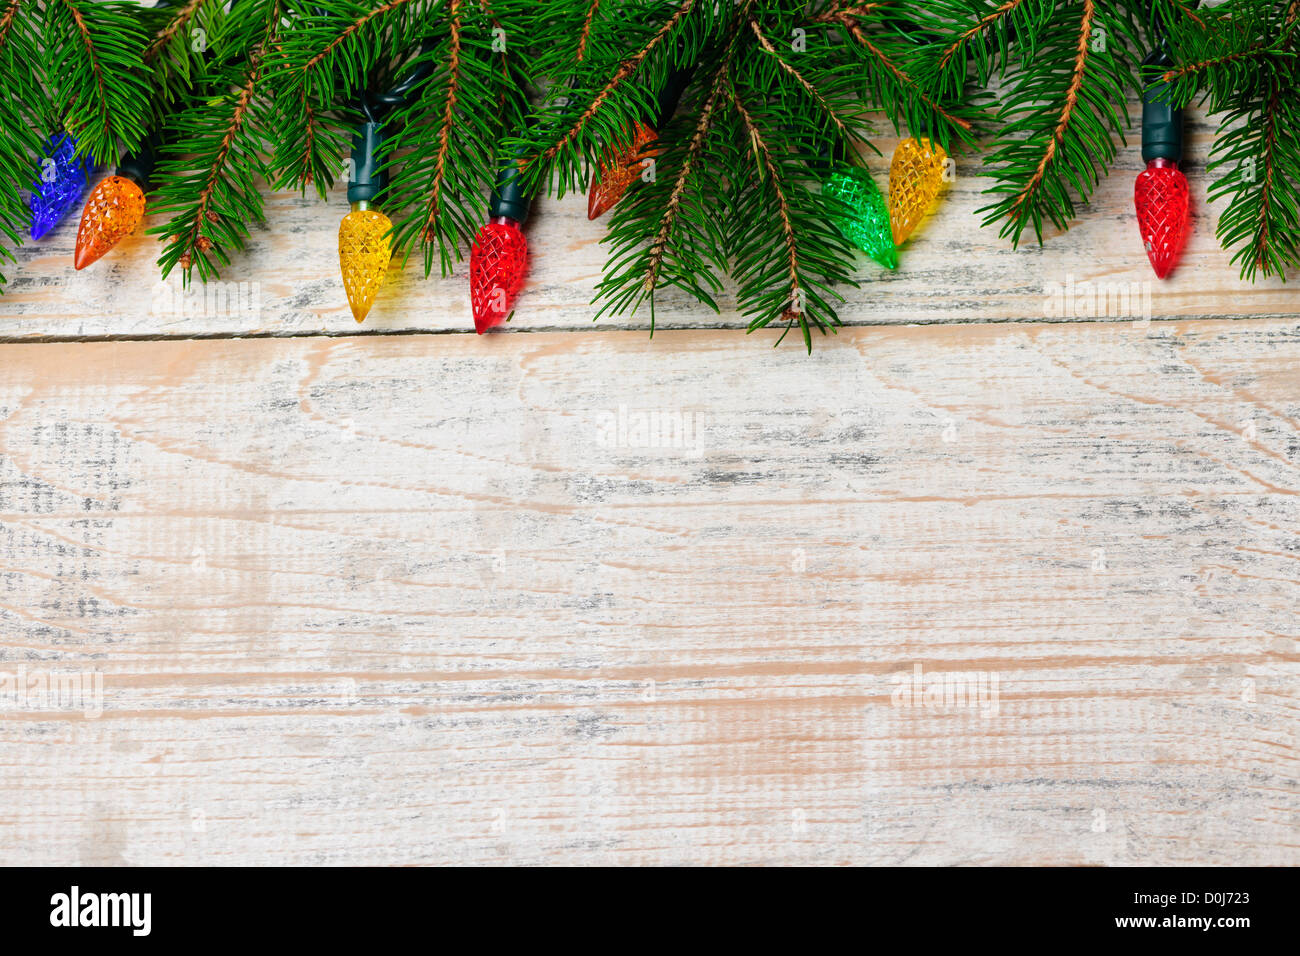 Multicolored Christmas lights on spruce branch with wooden background - Stock Image